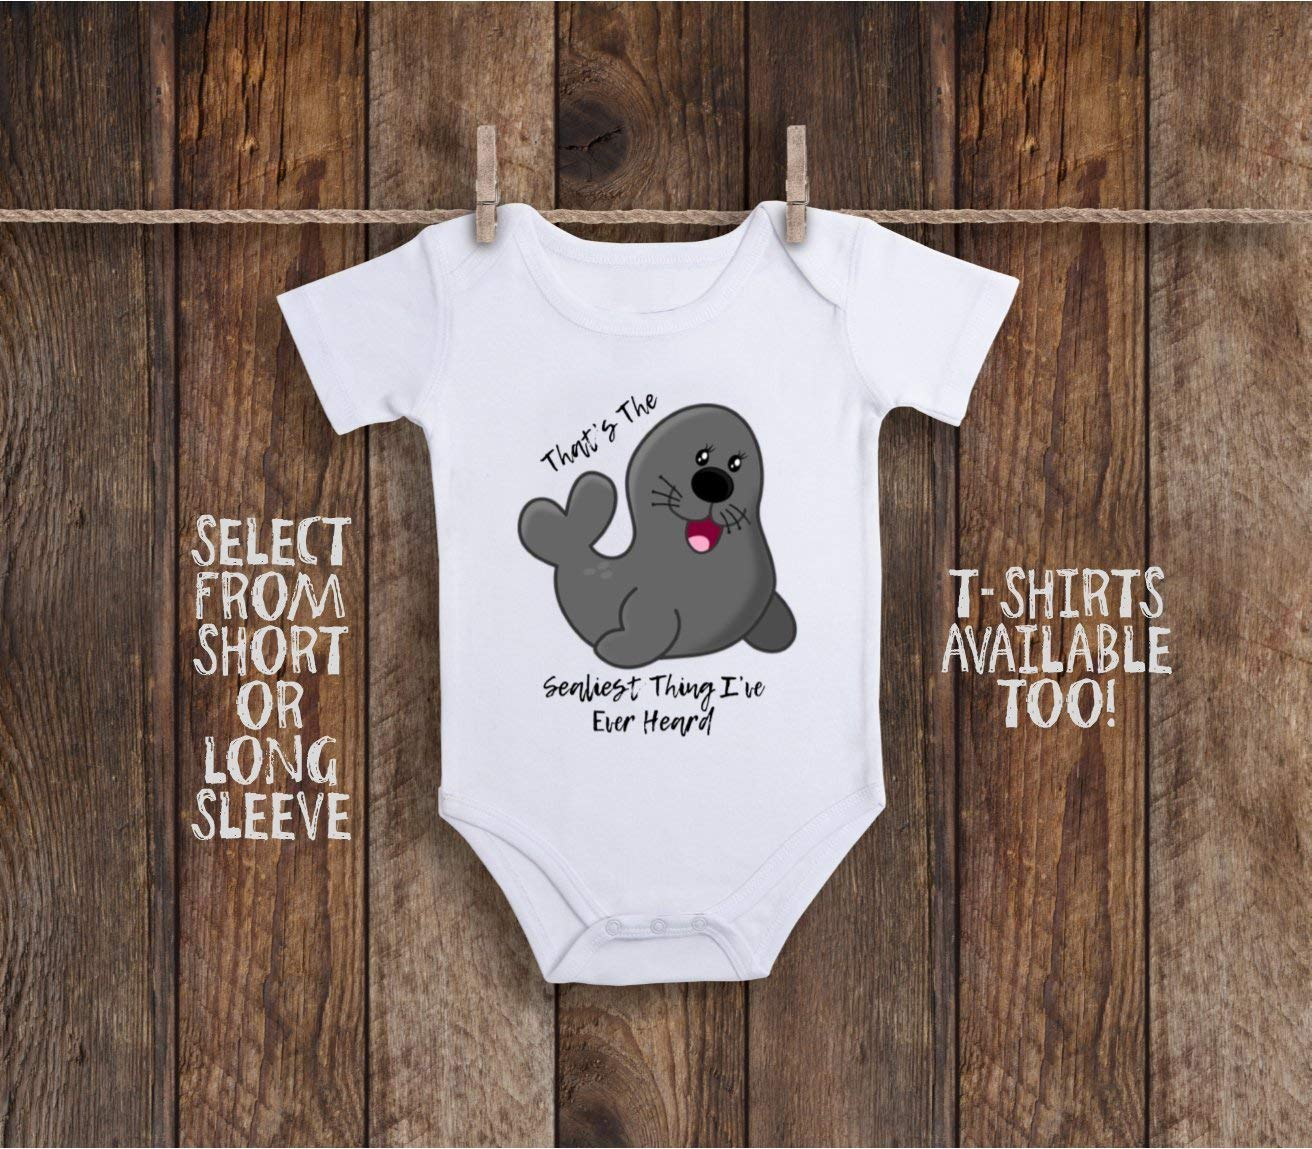 Funny That's The Sealiest Thing I've Ever Heard Baby Bodysuit or Shirt For Silly Arctic Seal Animal